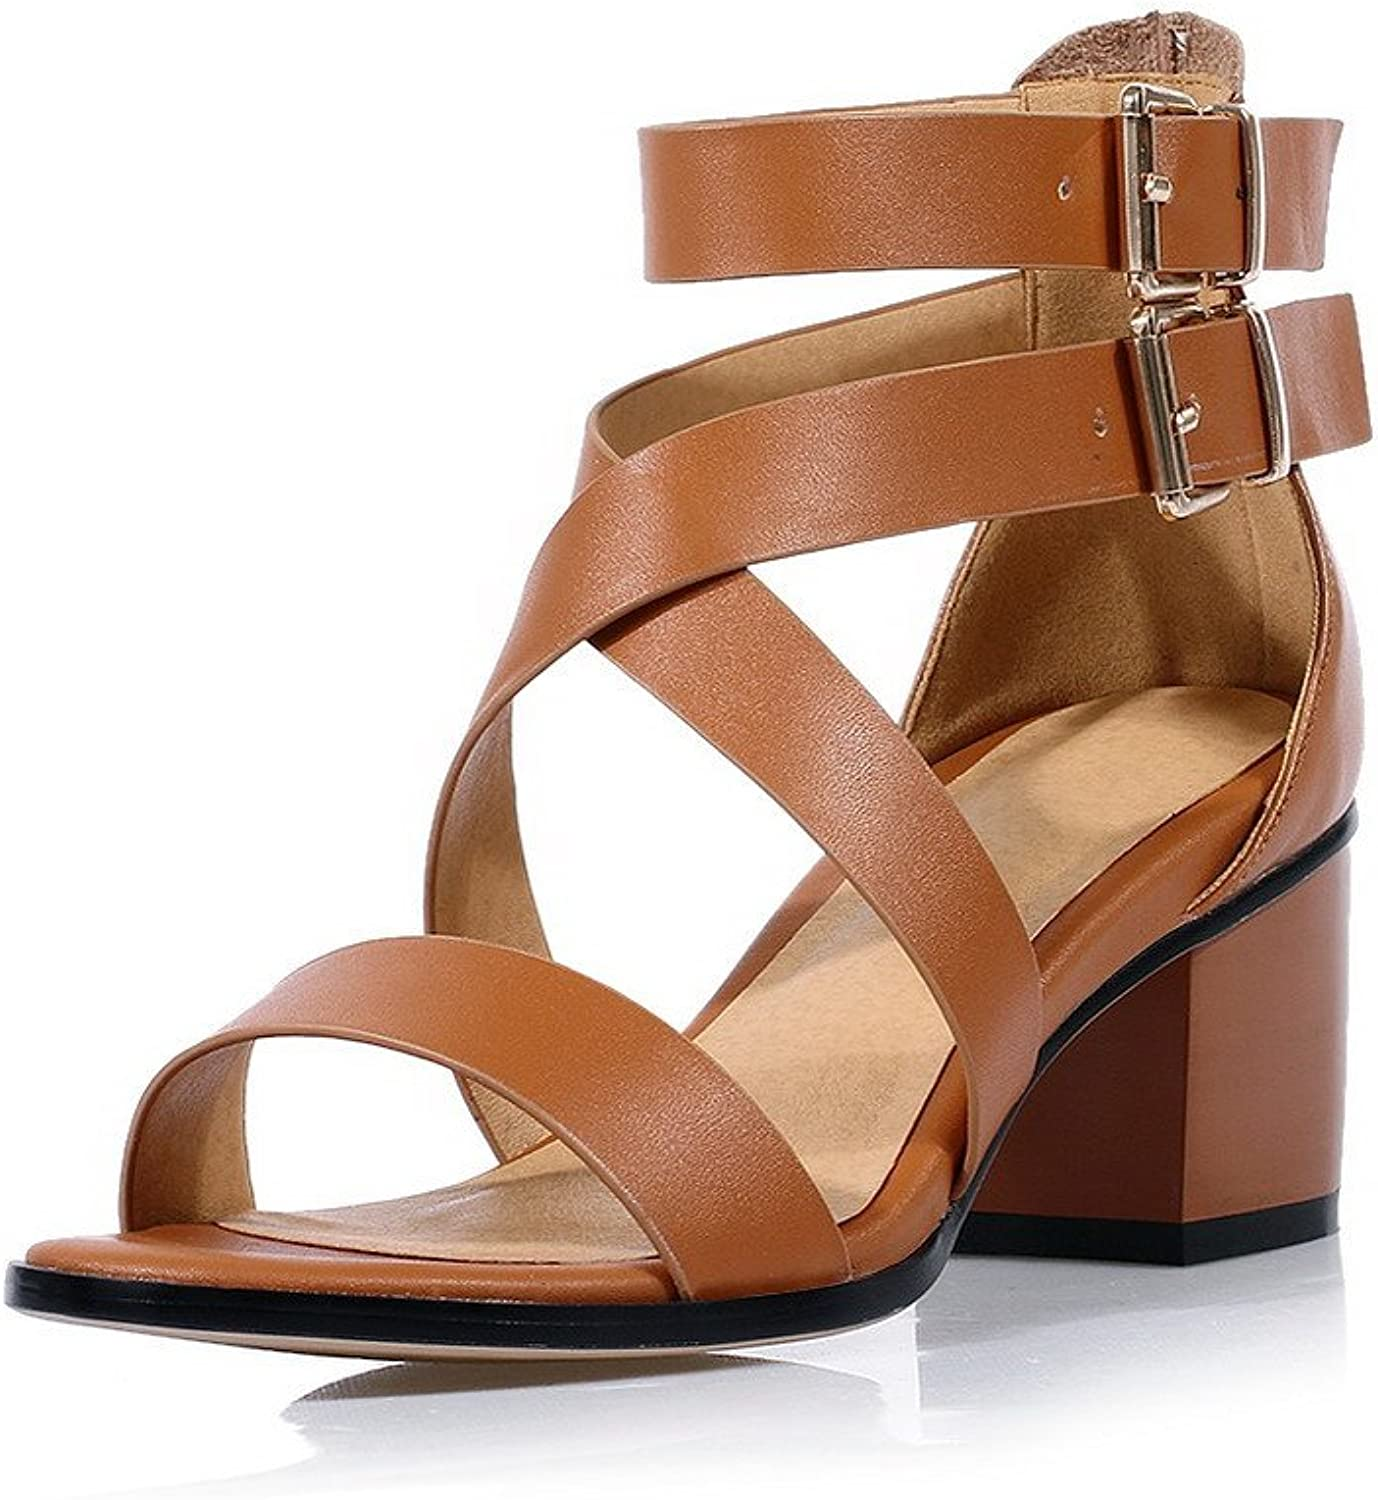 AmoonyFashion Women's Solid Soft Leather High Heels Buckle Sandals